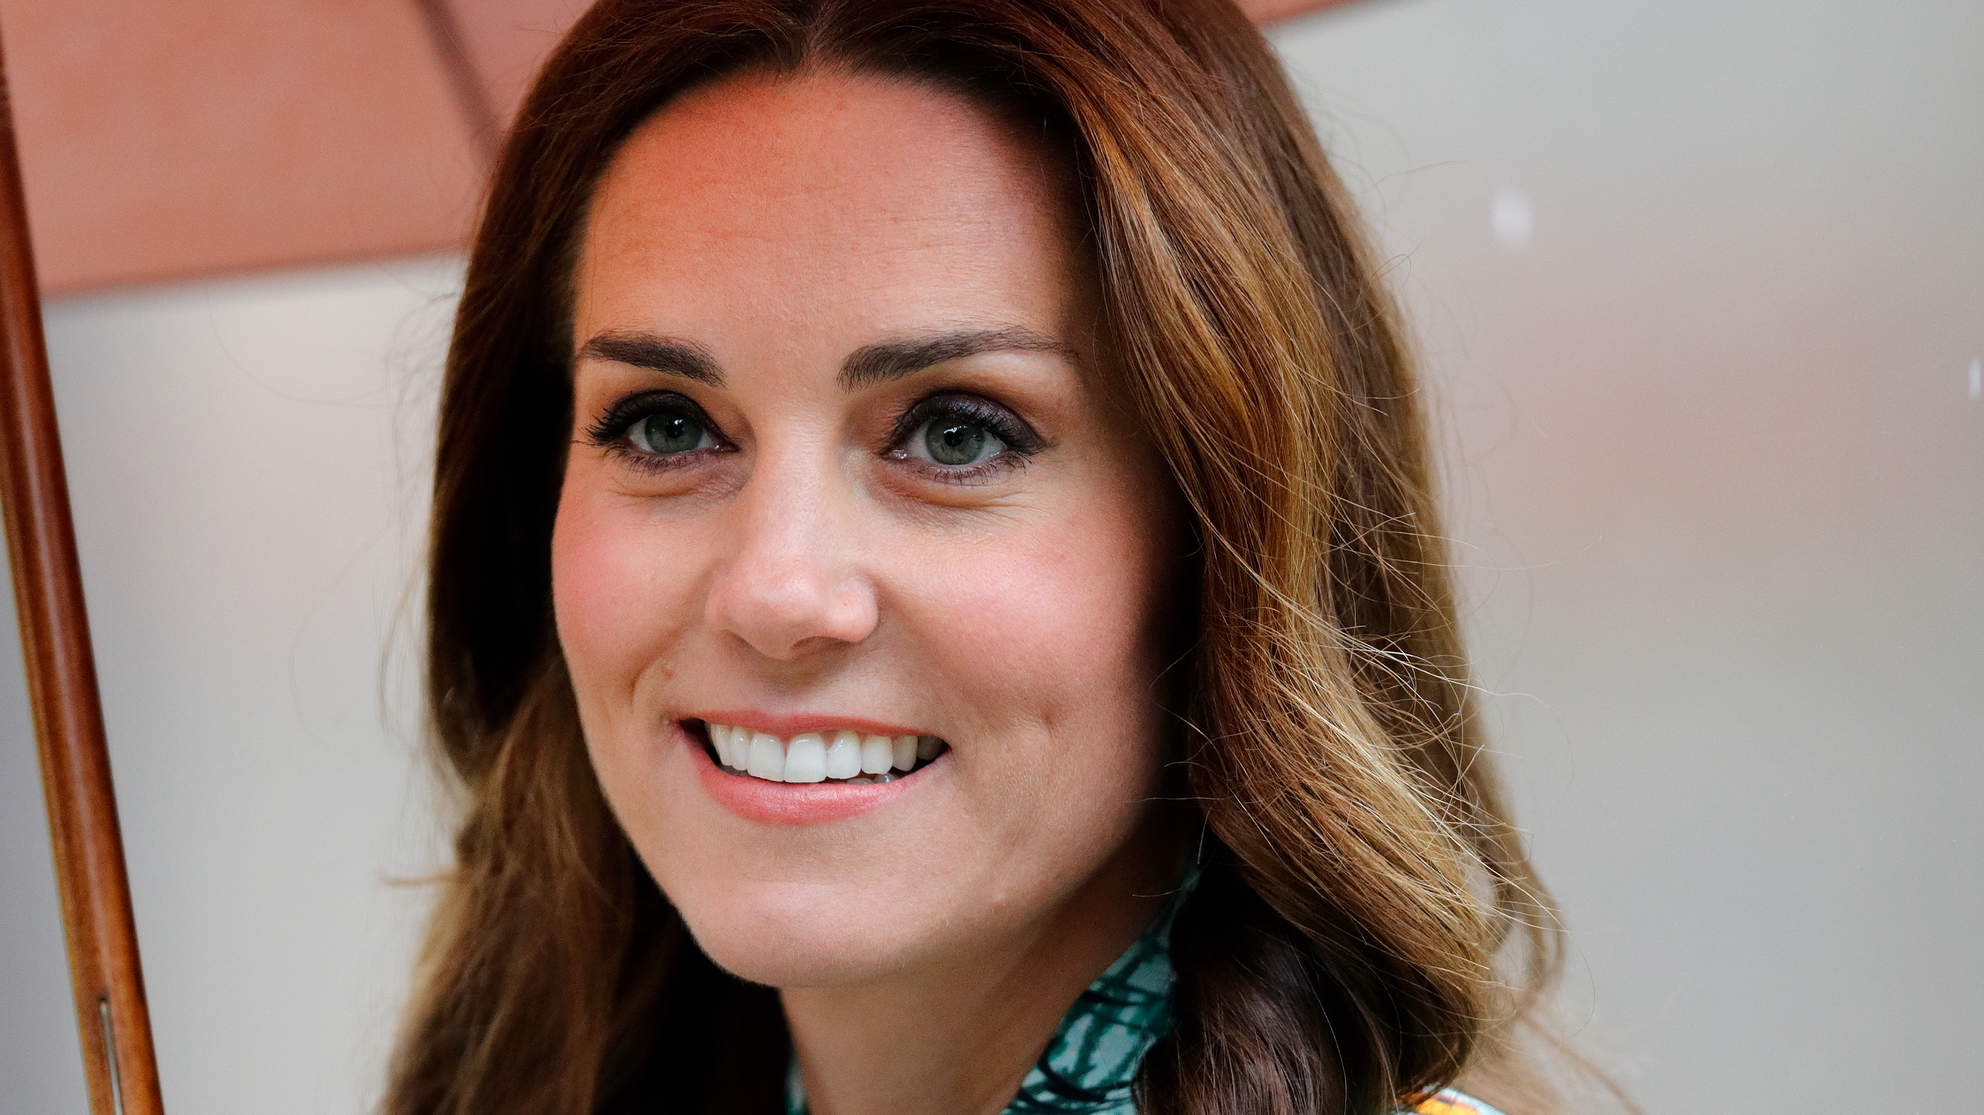 All About Princess Kate's Morning Sickness: What Is Hyperemesis Gravidarum?